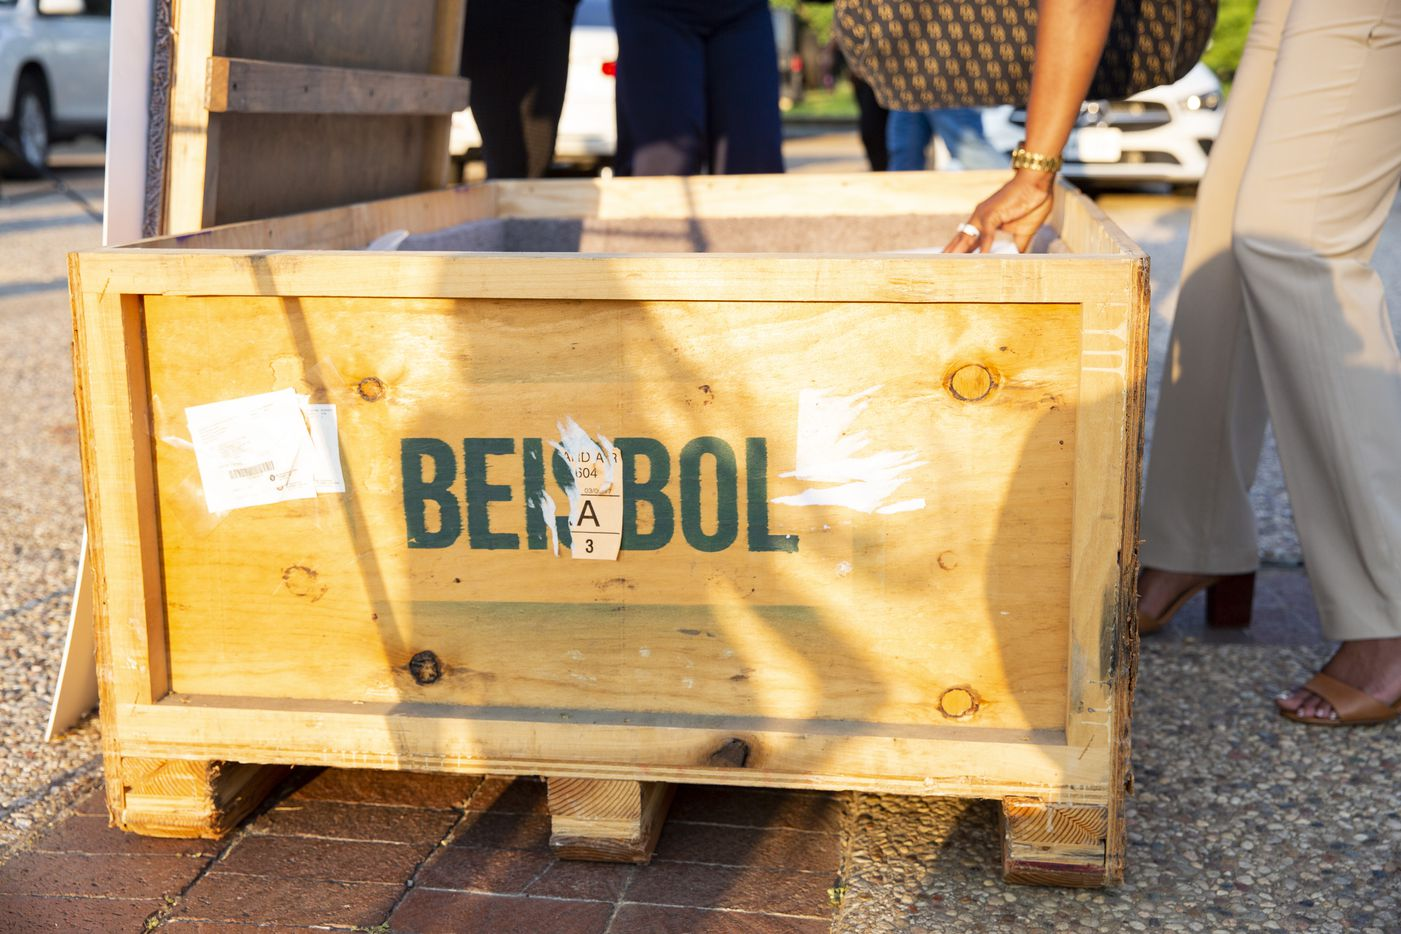 A crate holding part of the Negro League Baseball exhibit on Friday, June 18, 2021, at Fair Park in Dallas. The exhibit opens Saturday as part of the Juneteenth Celebration in Fair Park. (Juan Figueroa/The Dallas Morning News)